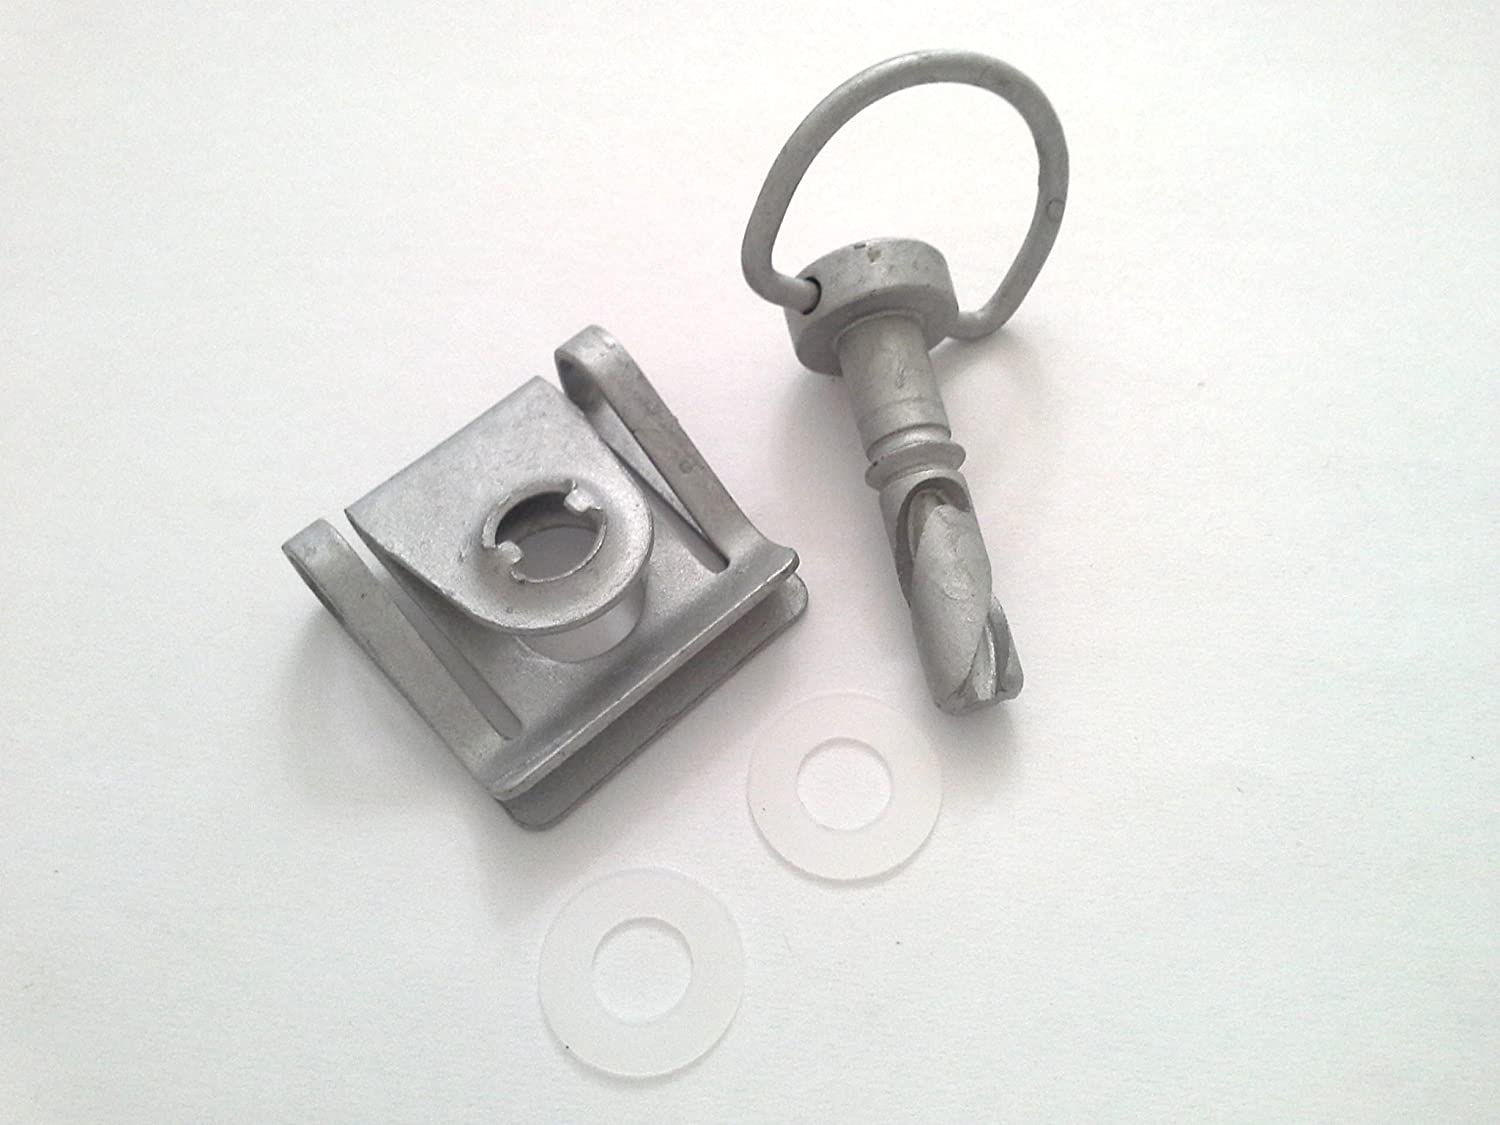 Smart Fortwo Engine Service Cover Bolt and Nuts (Rotary Catch)